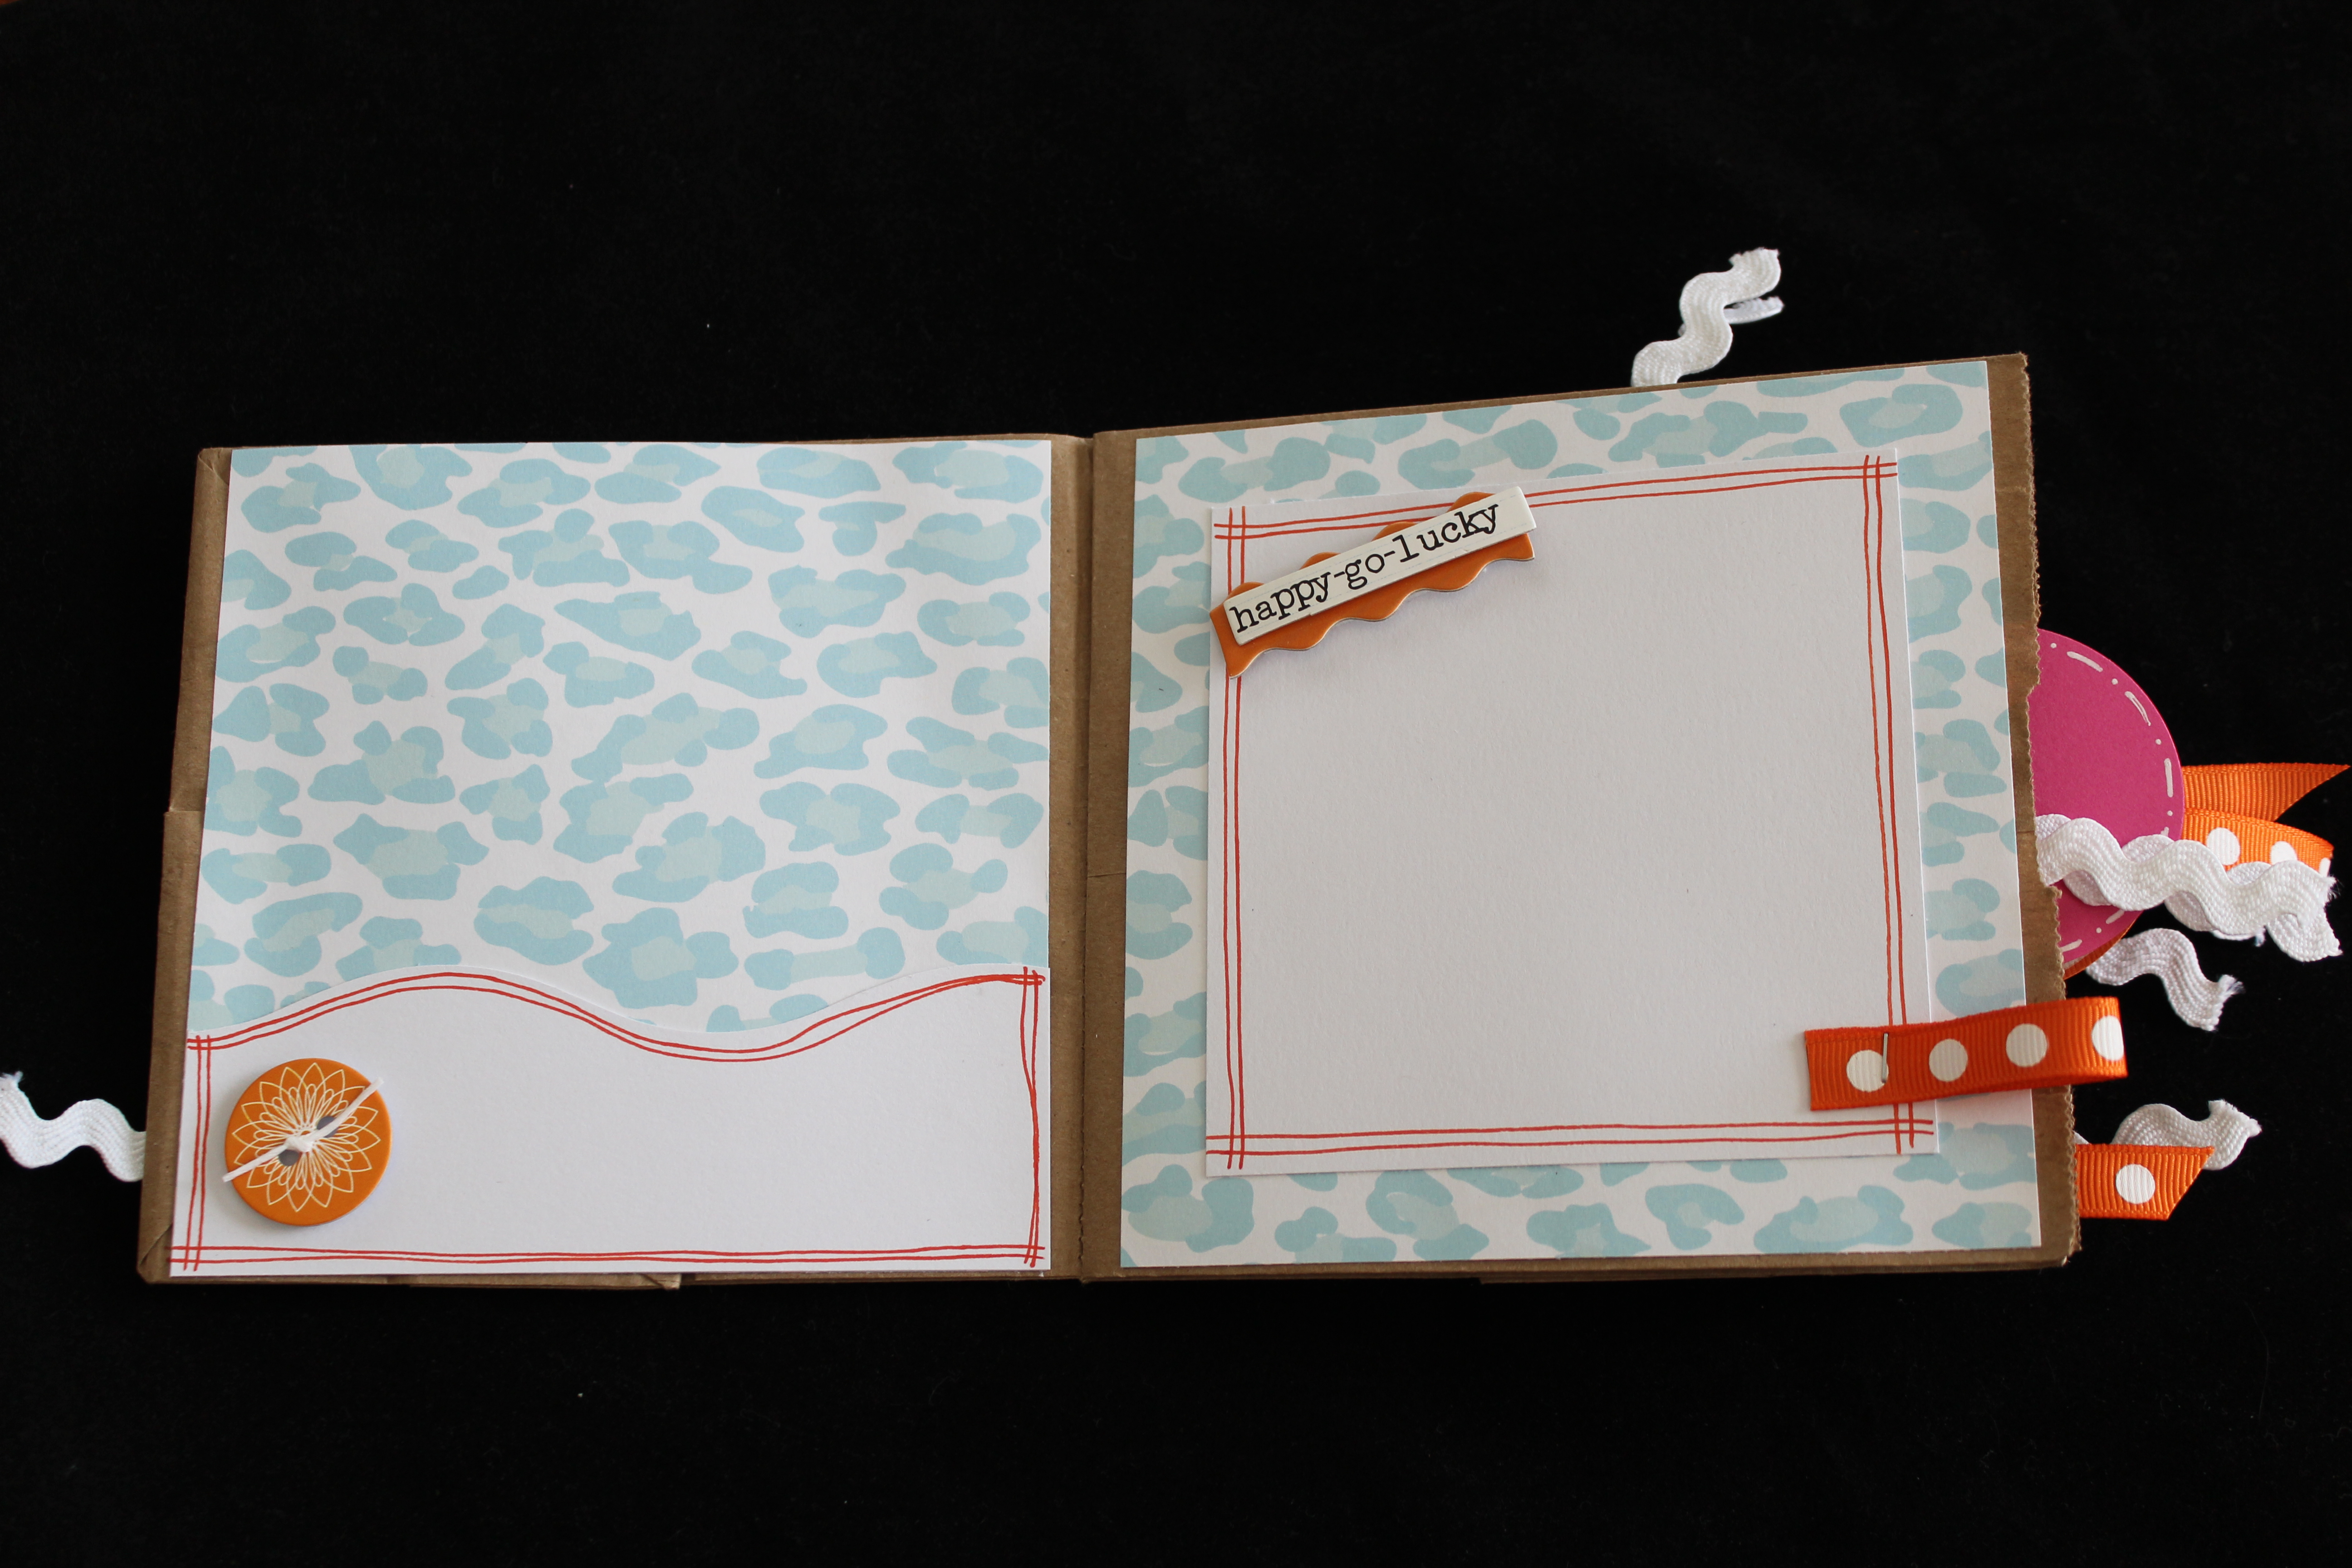 How to make scrapbook with construction paper - Credit Https Scrappybags Files Wordpress Com 2012 05 Img_3175 Jpg